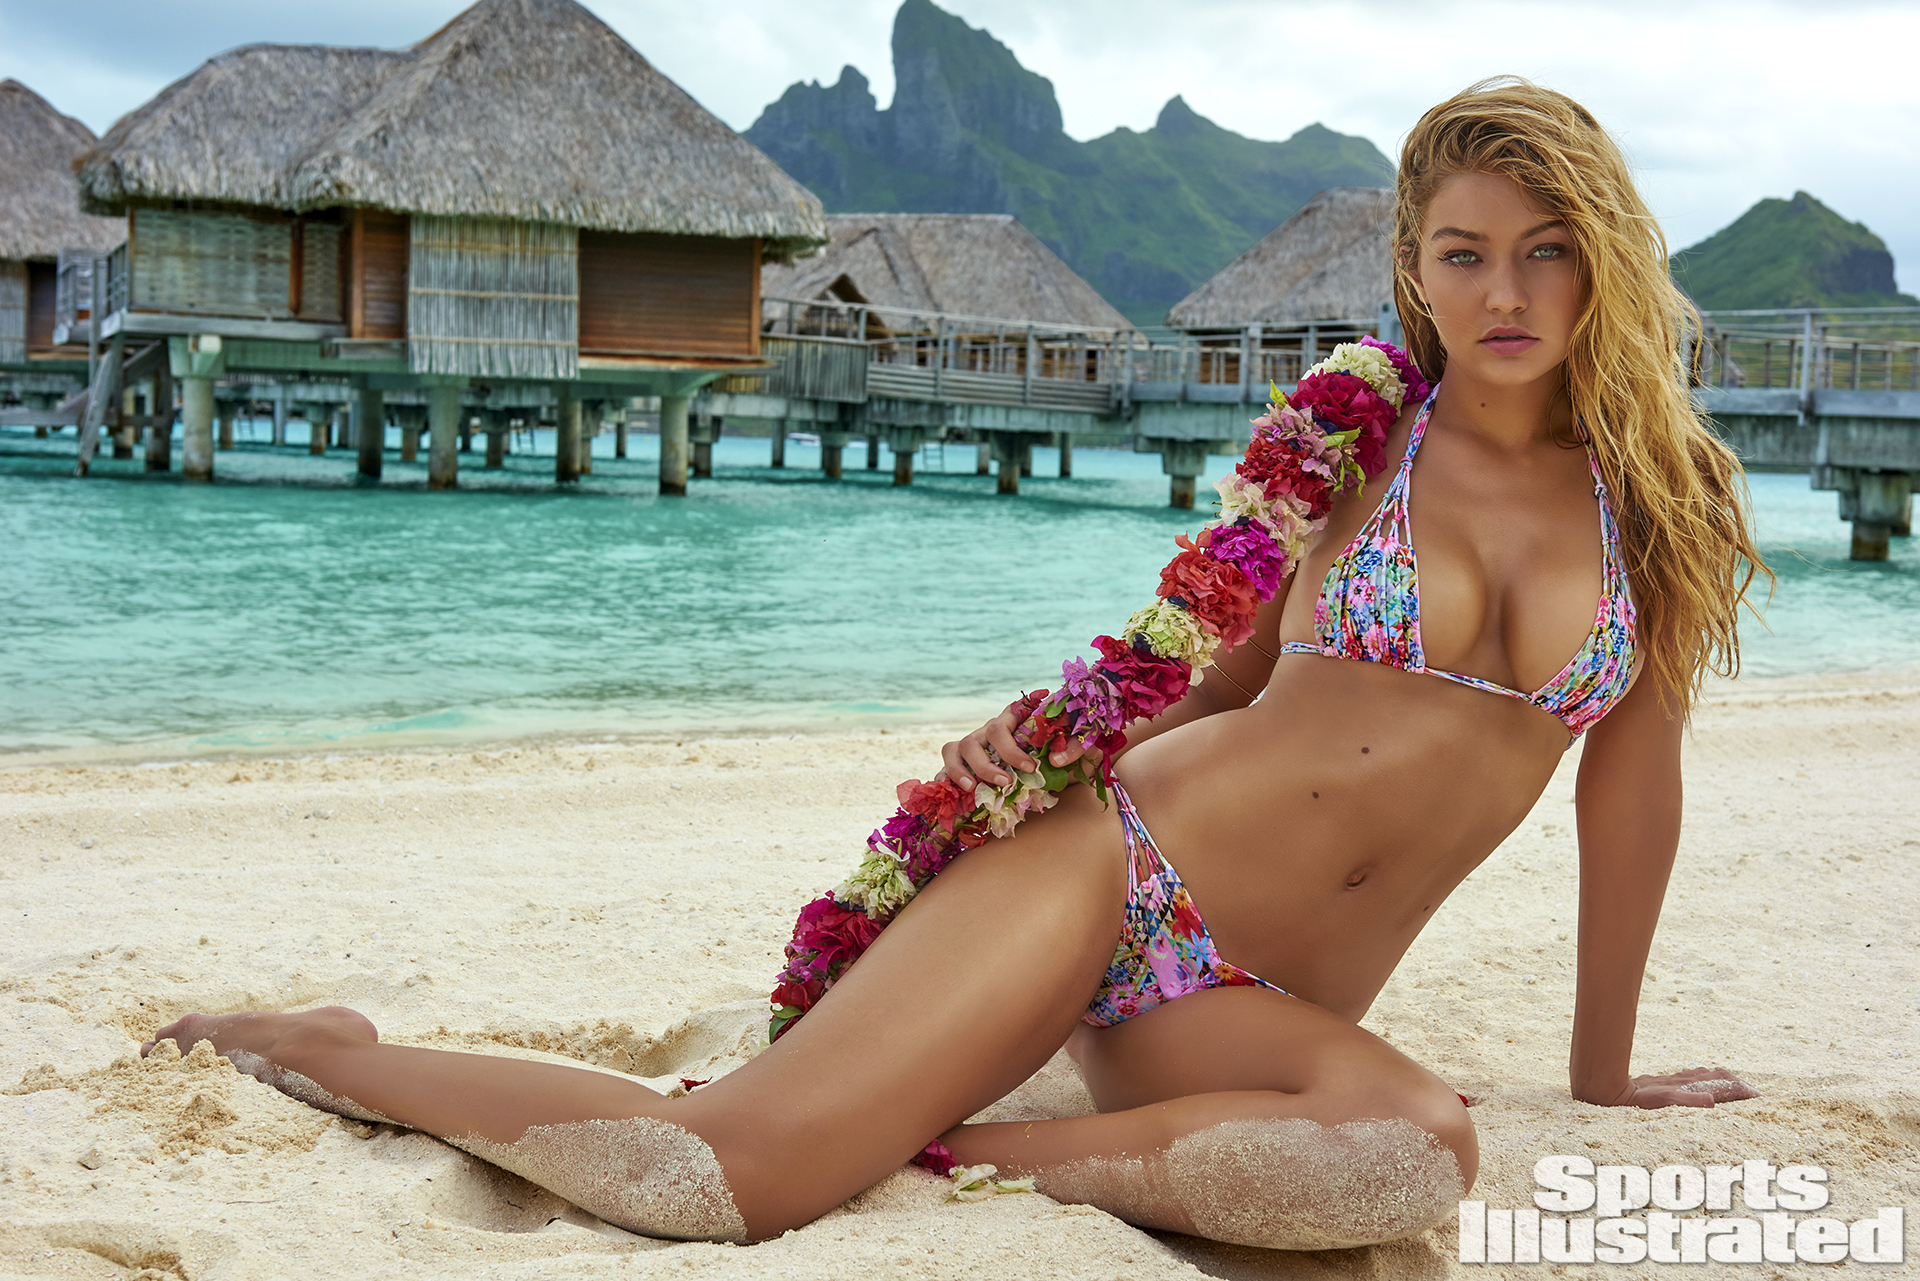 Gigi Hadid was photographed by Yu Tsai in The Islands Of Tahiti. Swimsuit by Kai Lani Swimwear.